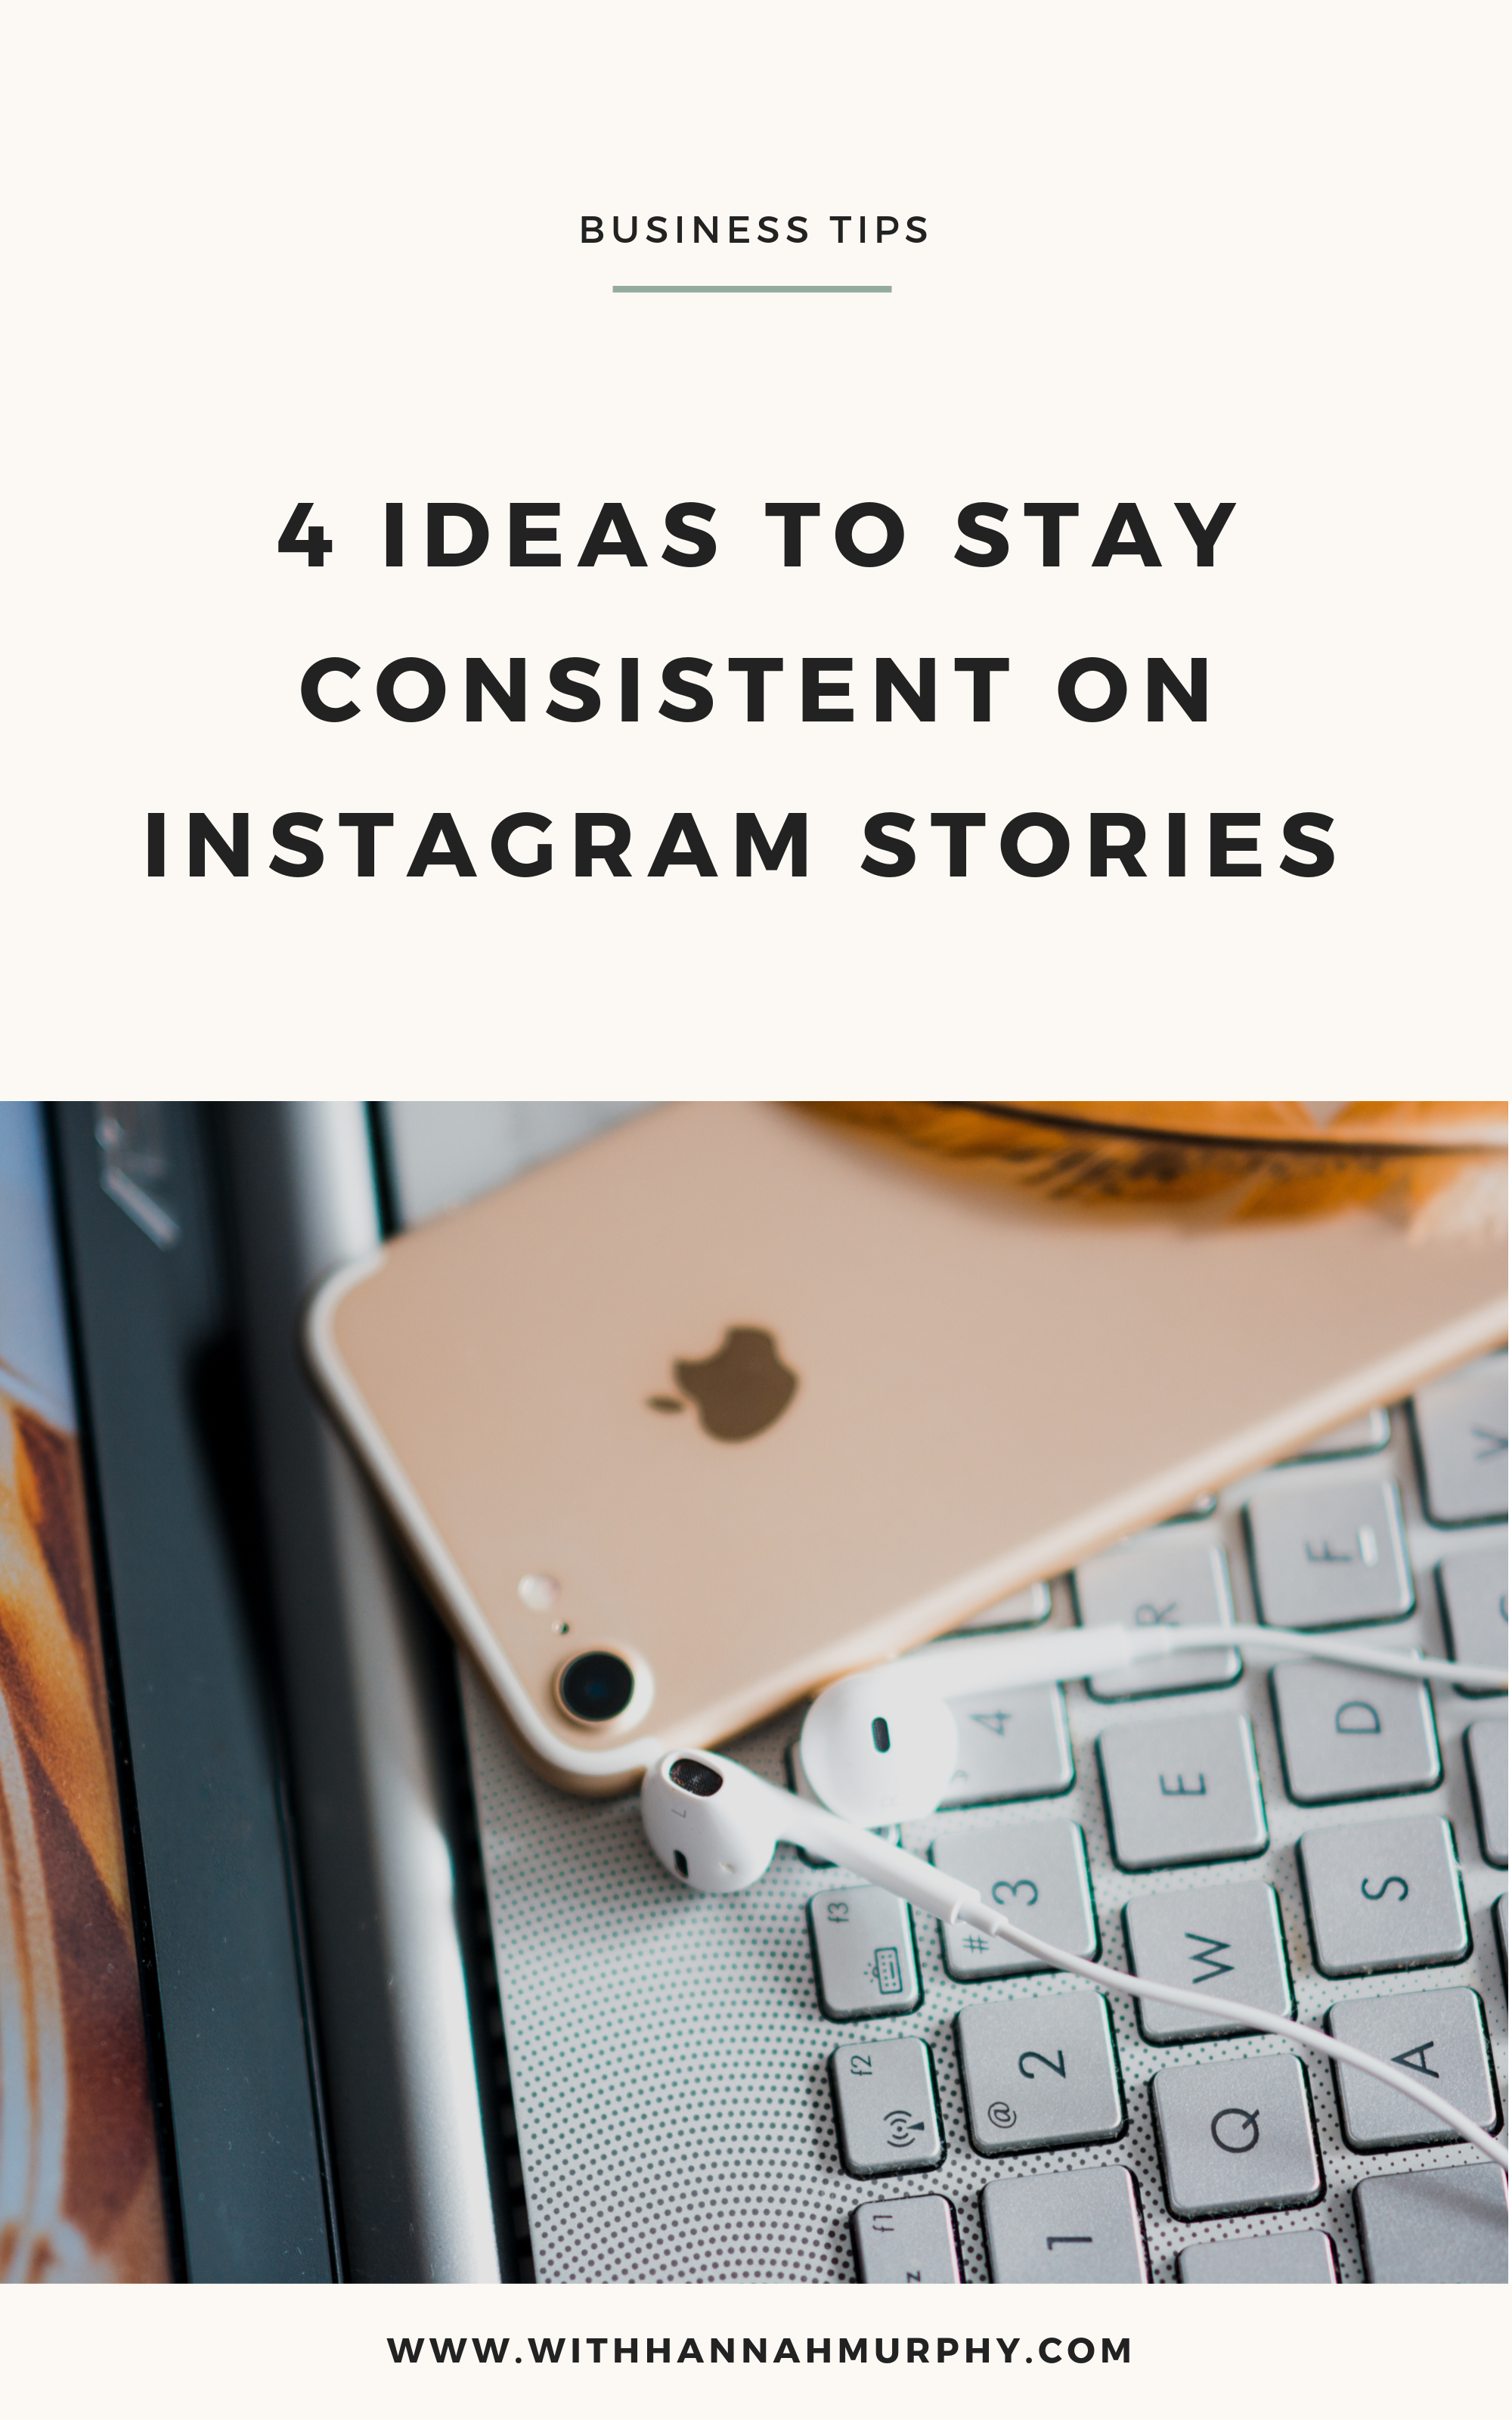 Struggling to stay consistent on instagram stories? These 4 tips will help you show up consistency to your audience so they can know, like and trust you, leading to an increase in connection and sales